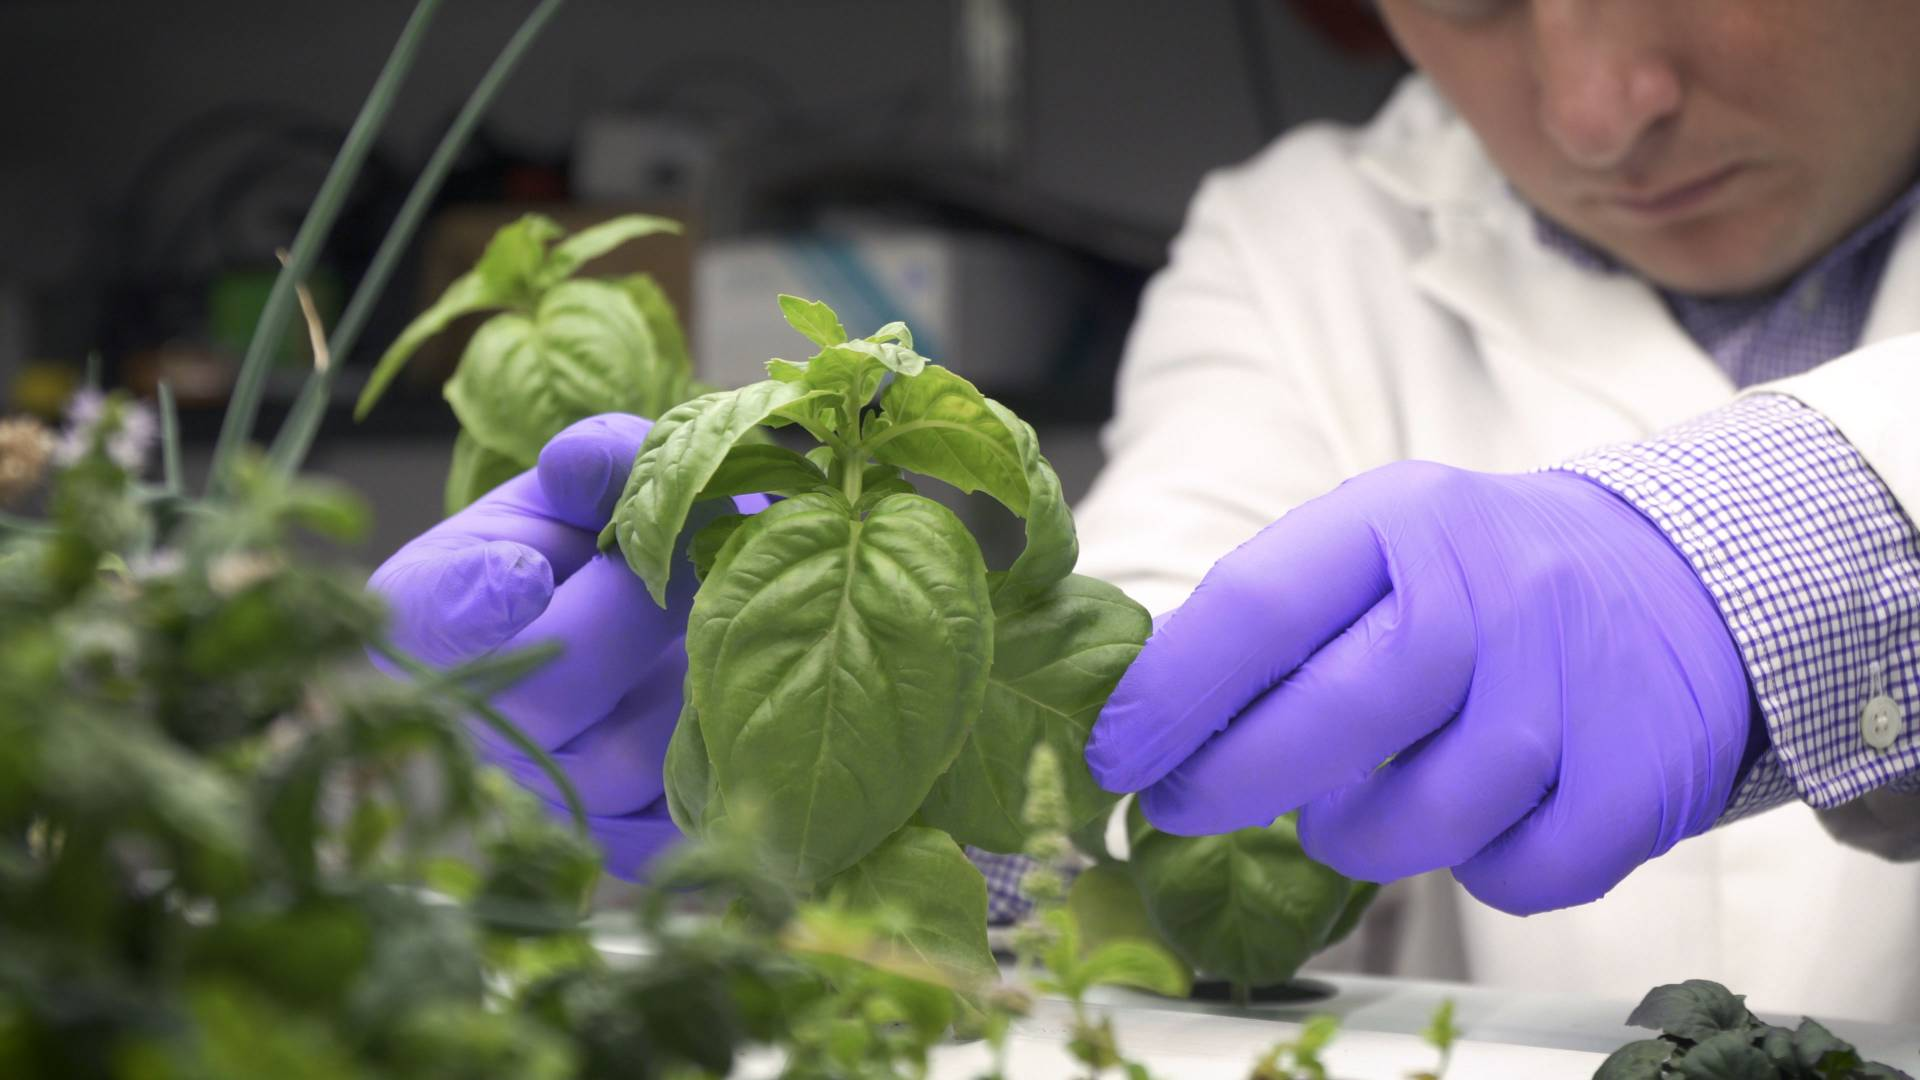 A researcher inspecting a plant